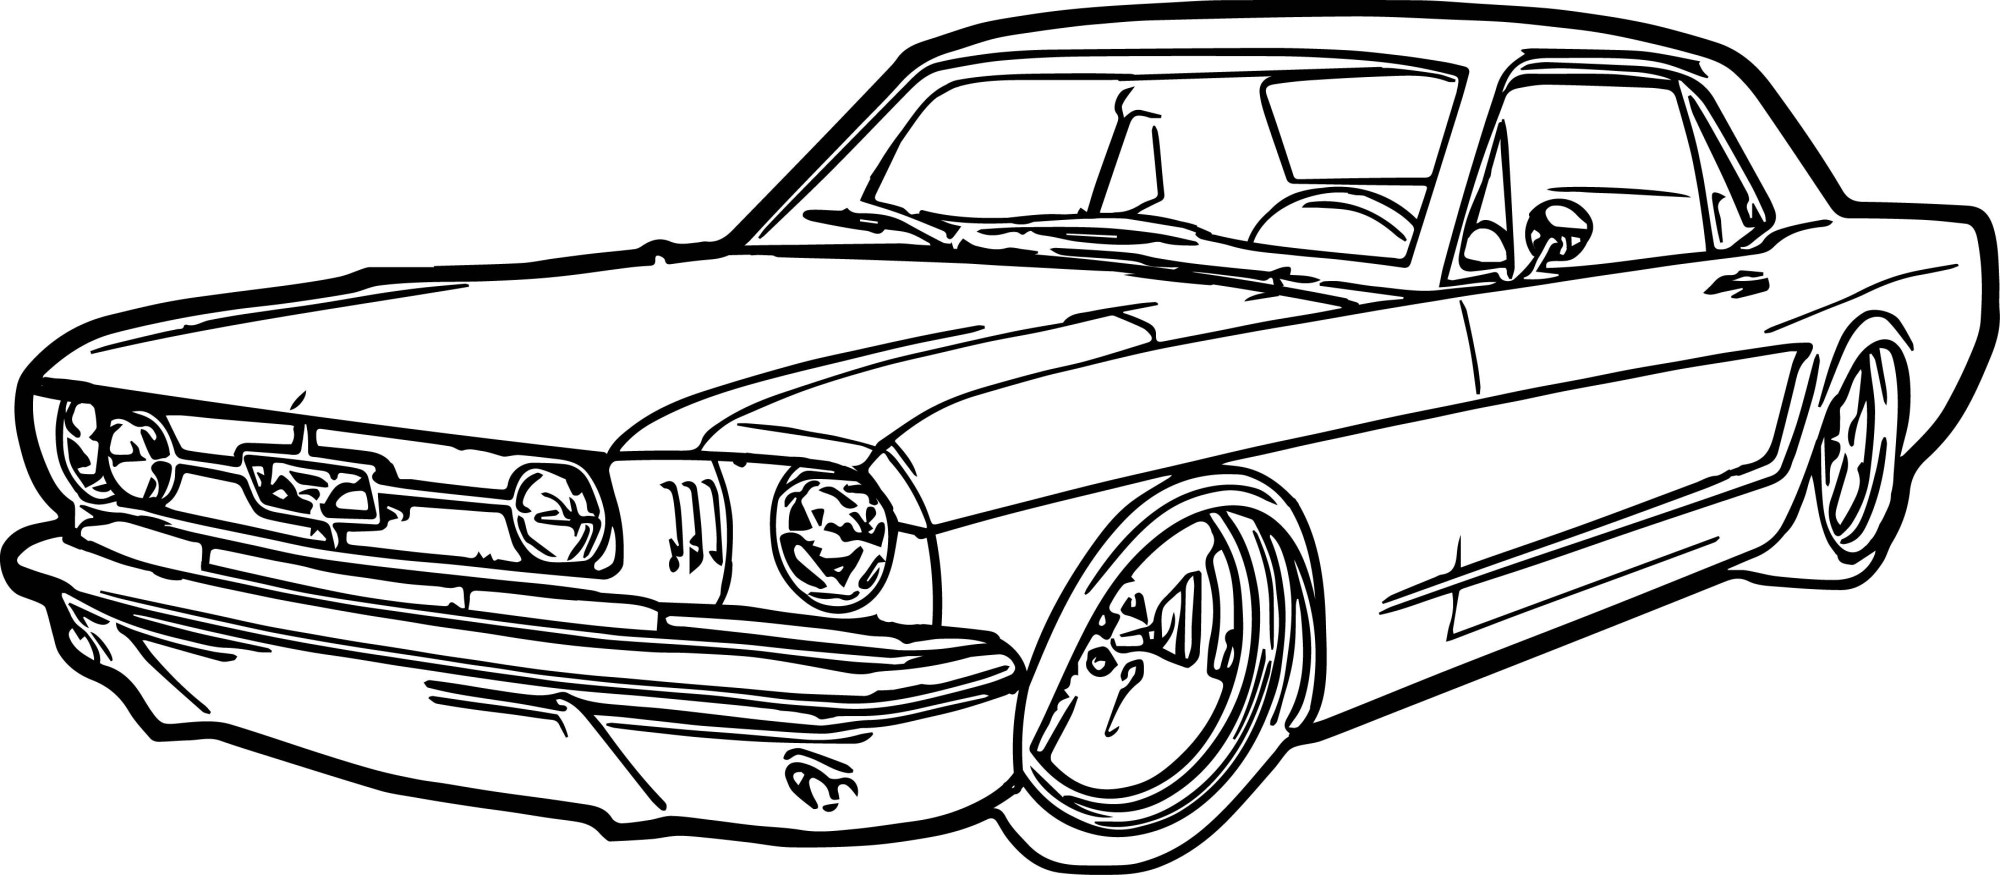 hight resolution of hot rod coloring pages to print coloring books and pages simple hot rod coloring pages